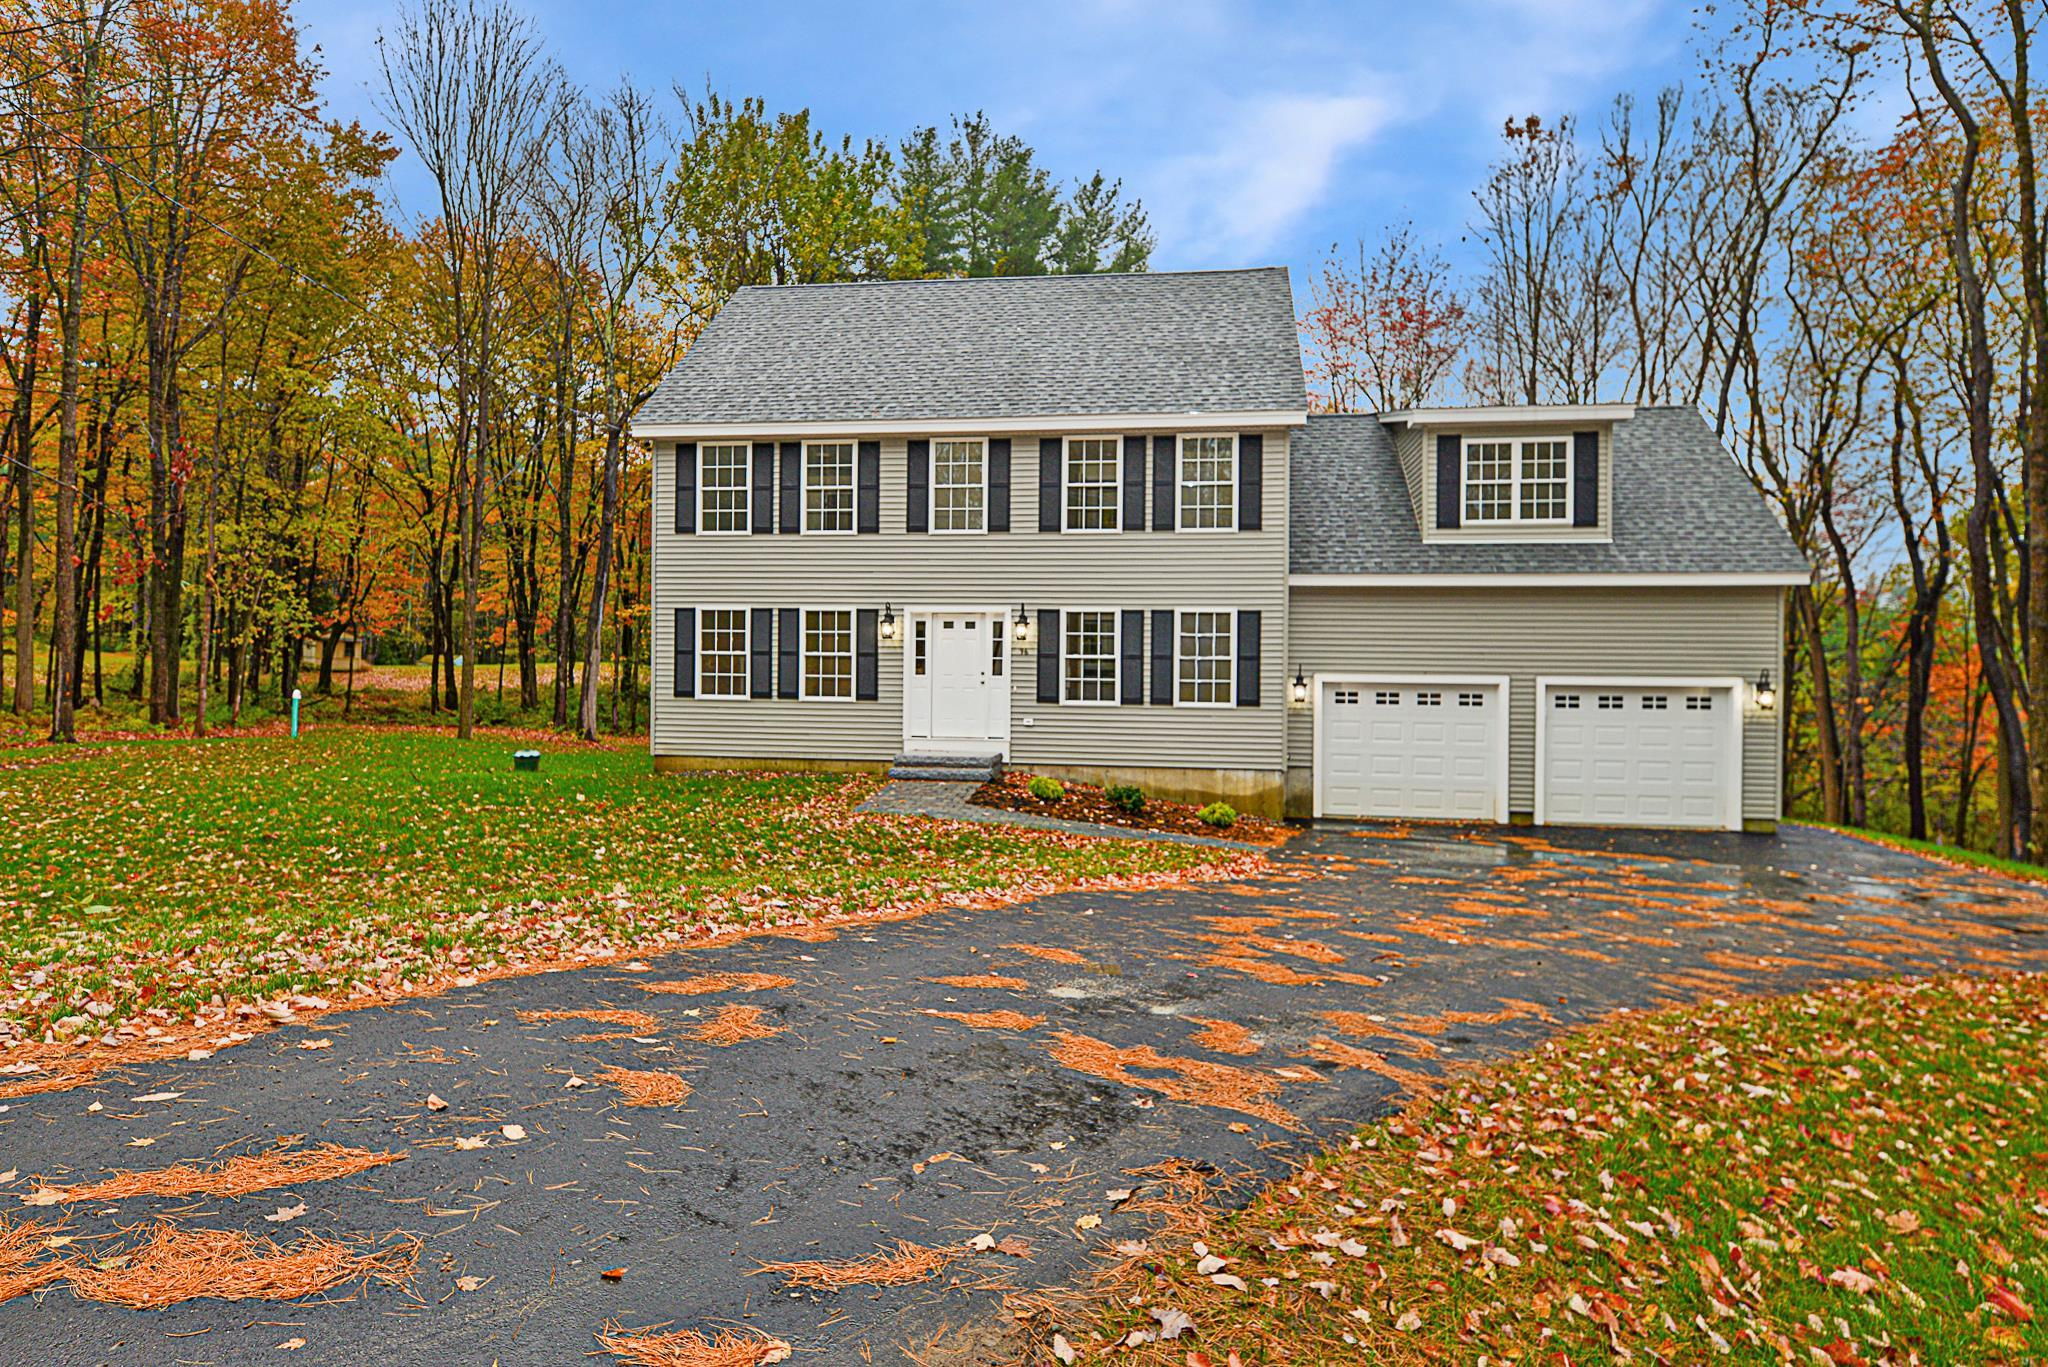 96 Pleasant Street, Epping, NH 03042